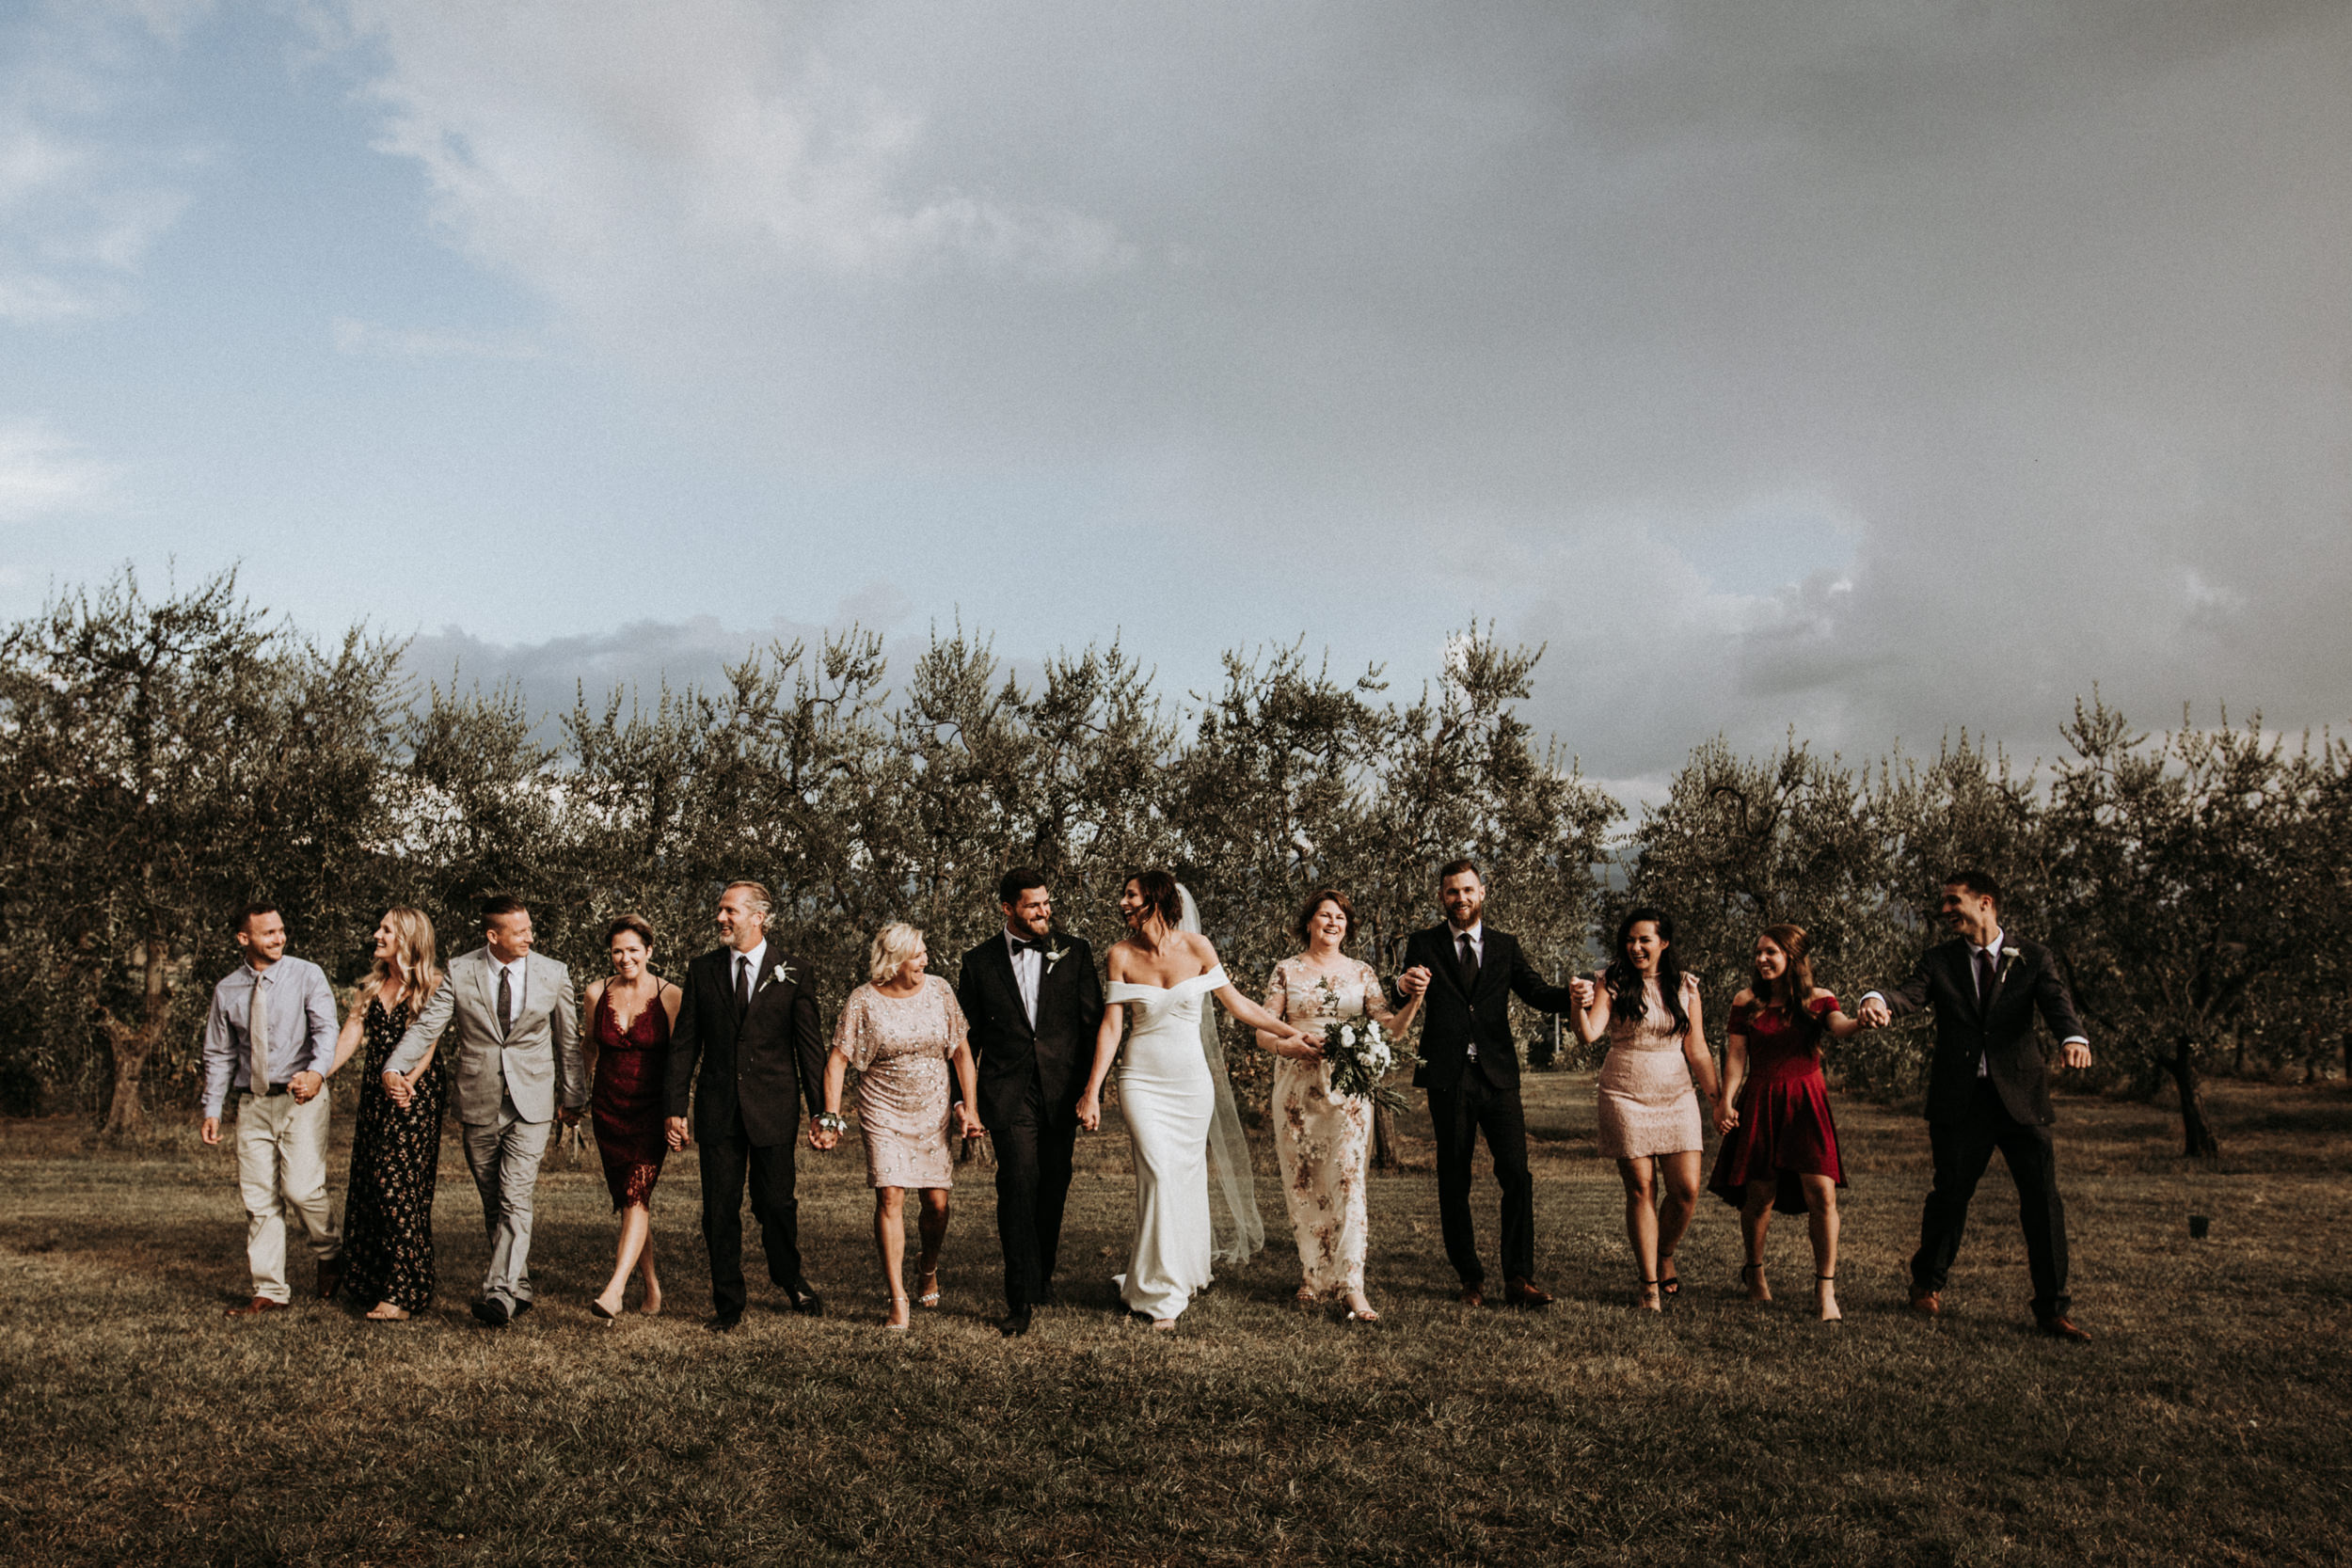 dm_photography_KW_Tuscanyweddingday_263